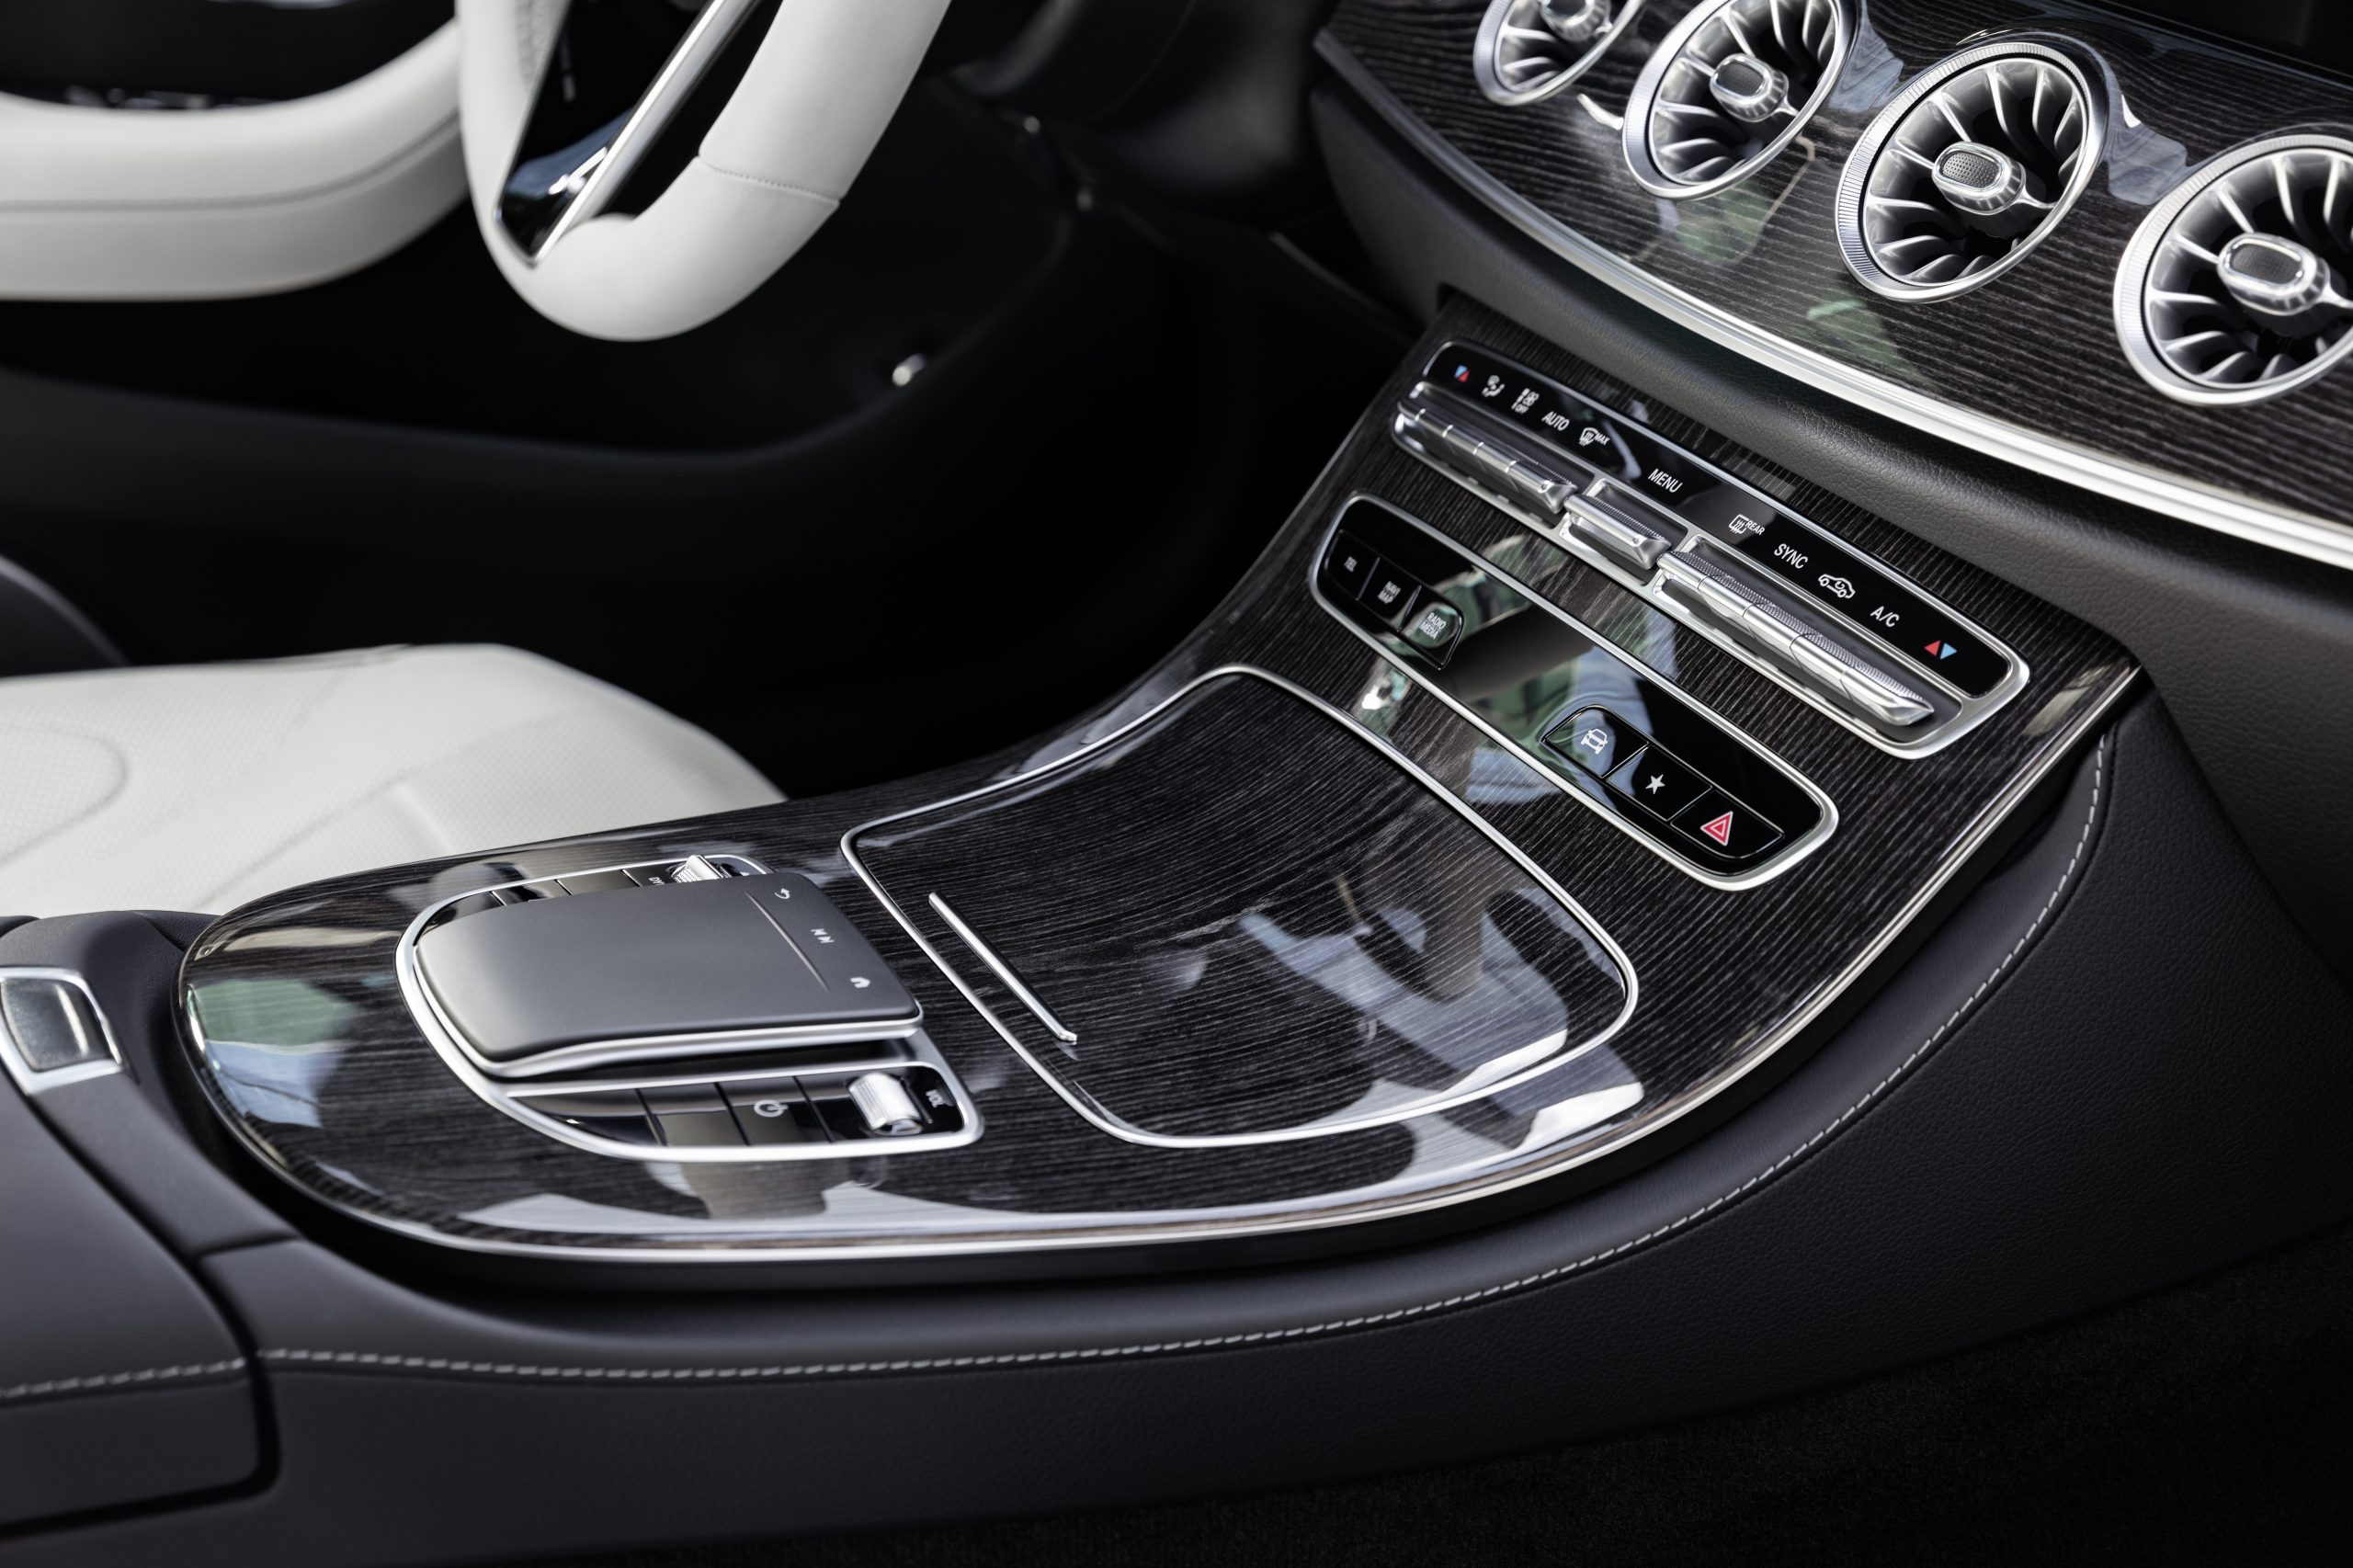 2021 Mercedes-Benz CLS 450 4Matic Coupé interior console touchpad